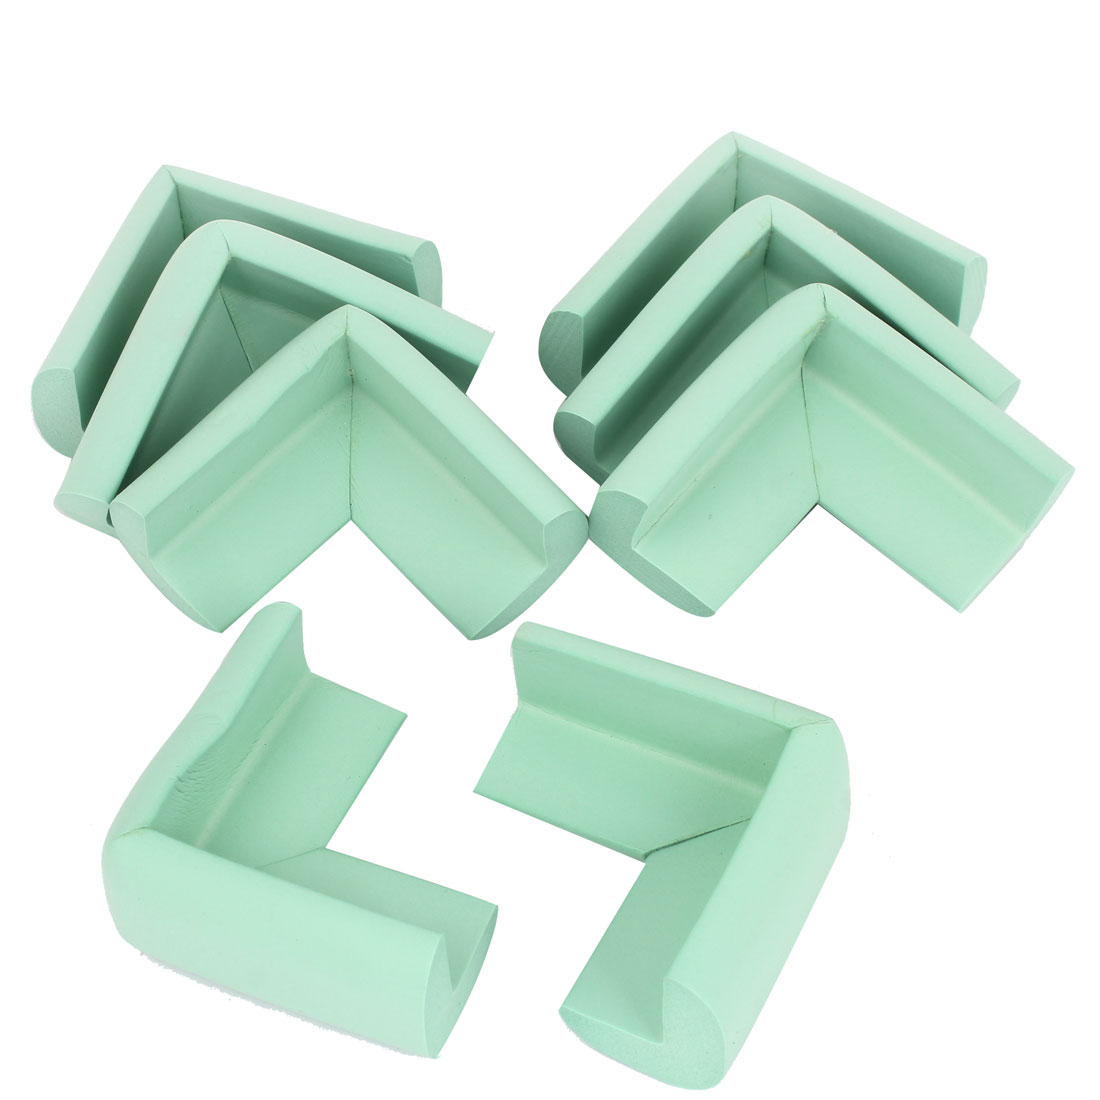 Foam Table Desk Cupboard Corner Mat Cover Guard Protector Cushion 8Pcs Light Green